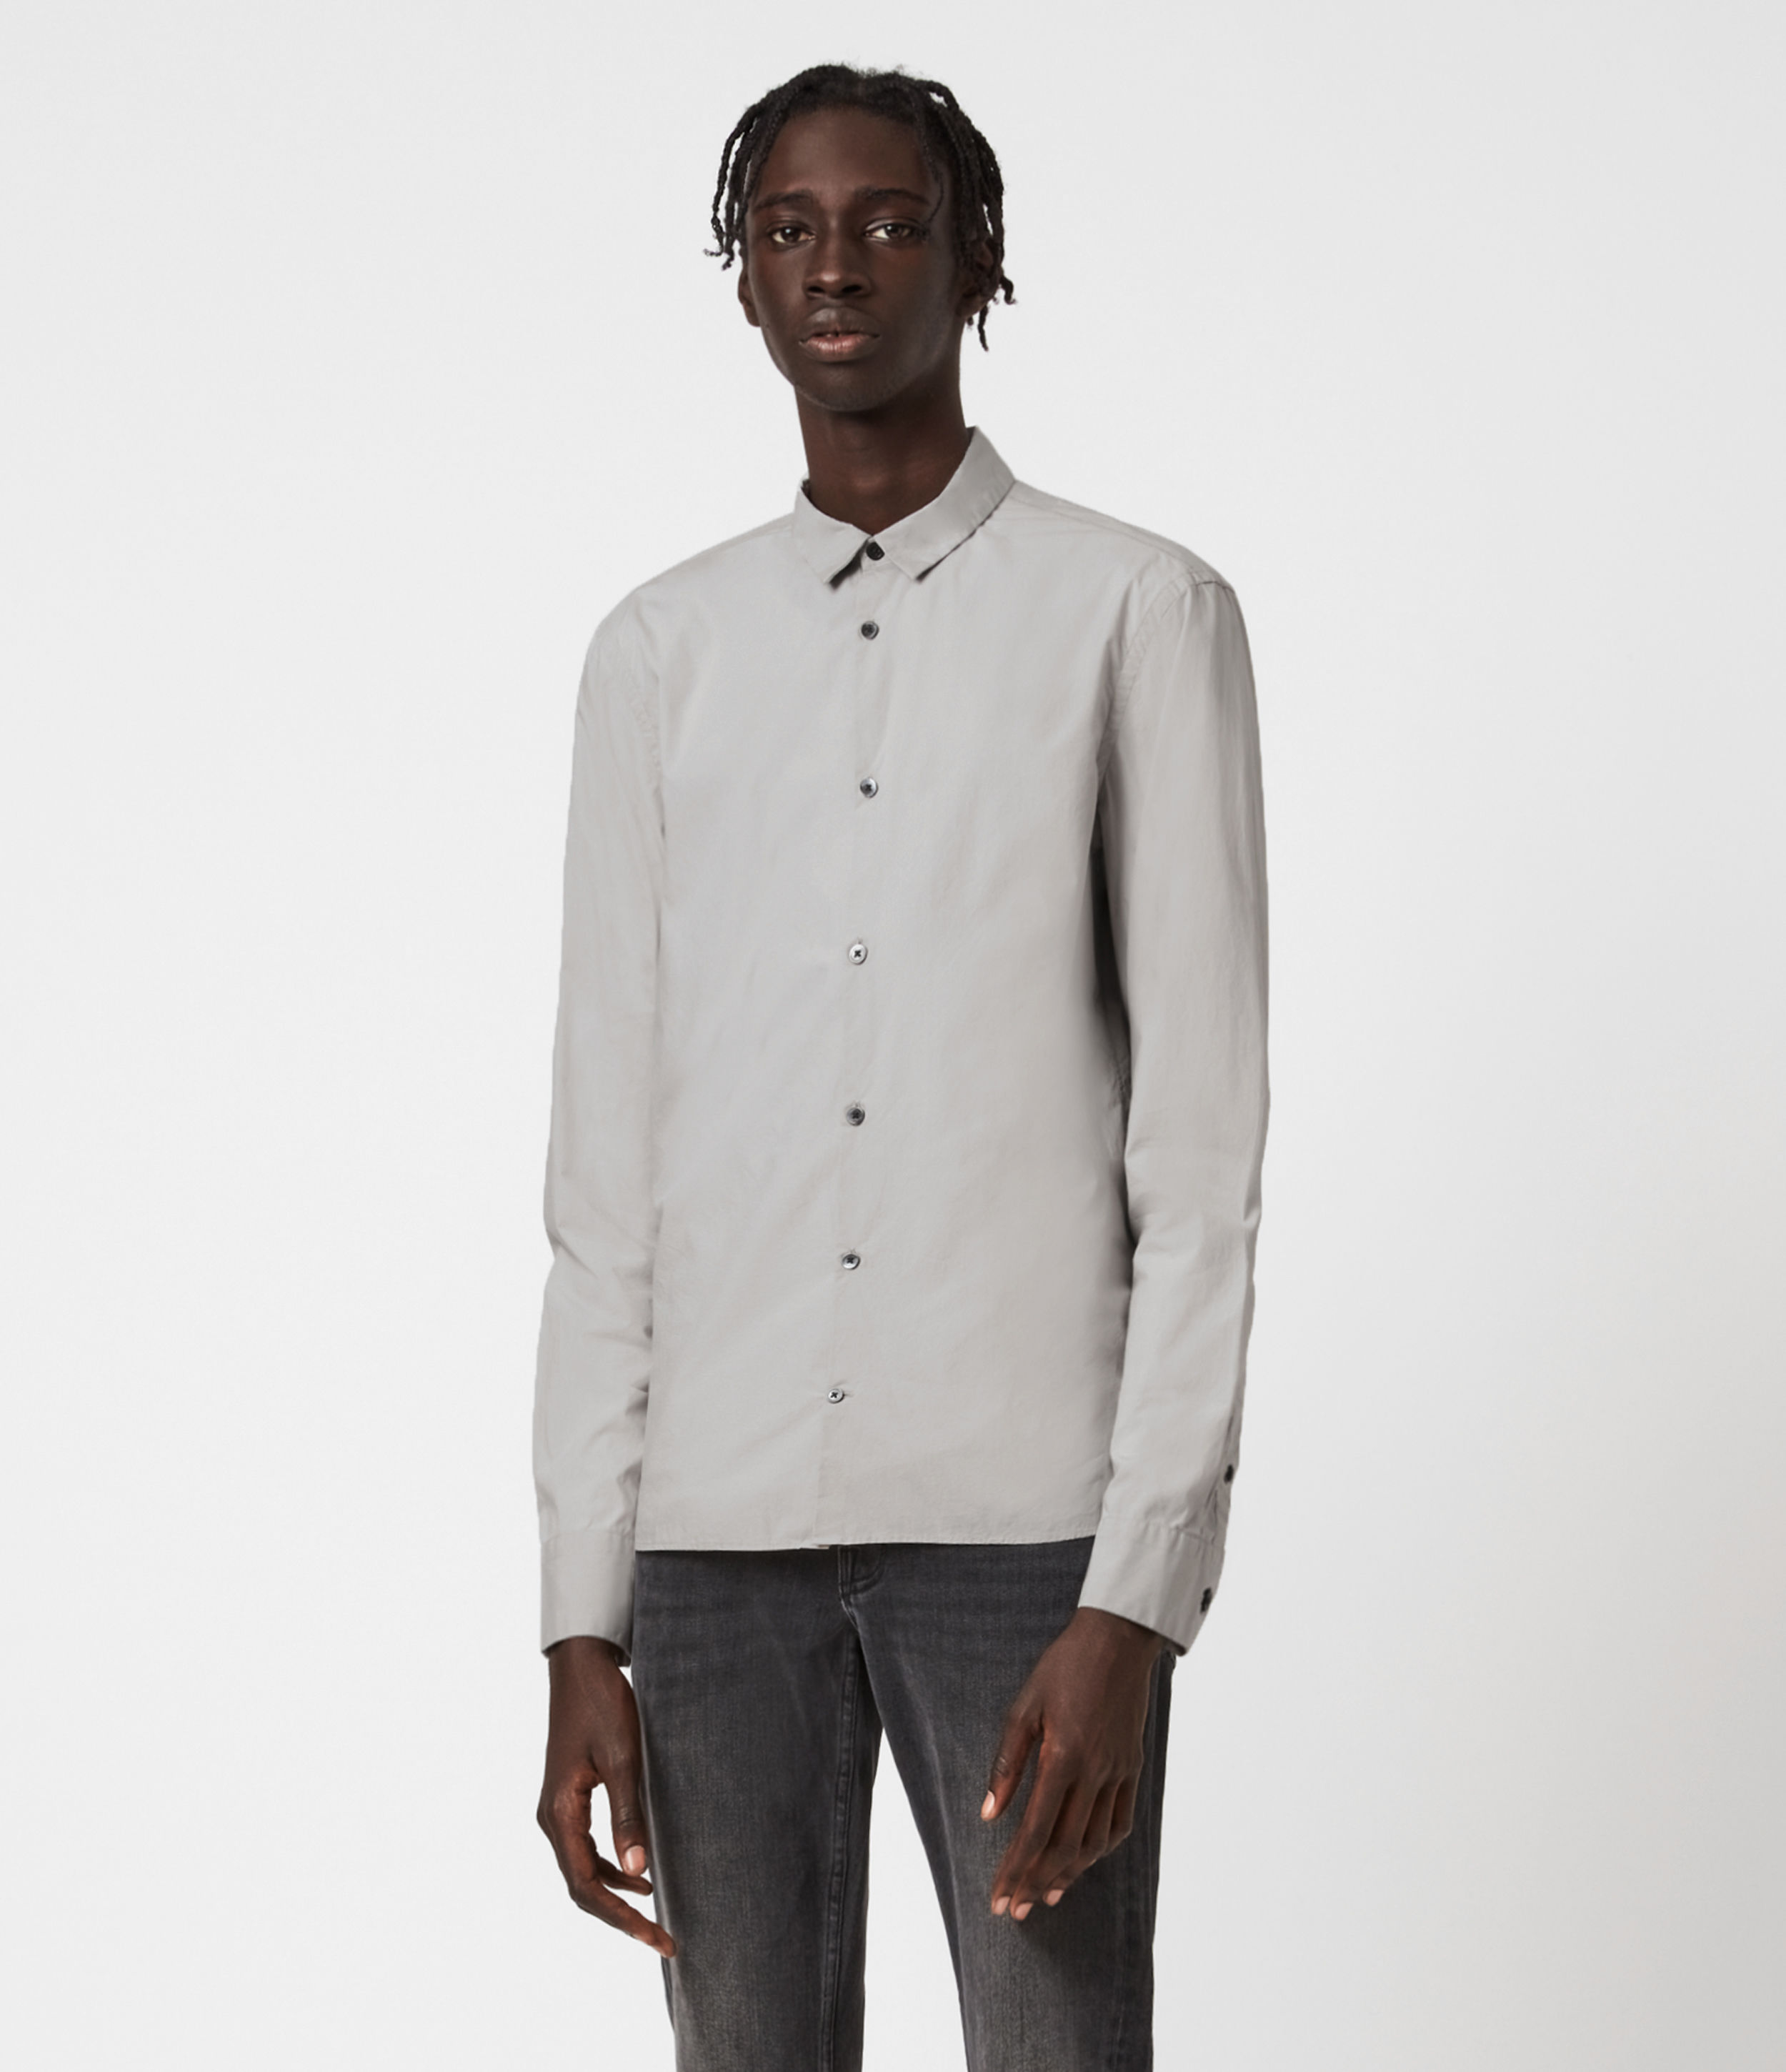 AllSaints Mens Elloree Shirt, Light Grey, Size: S